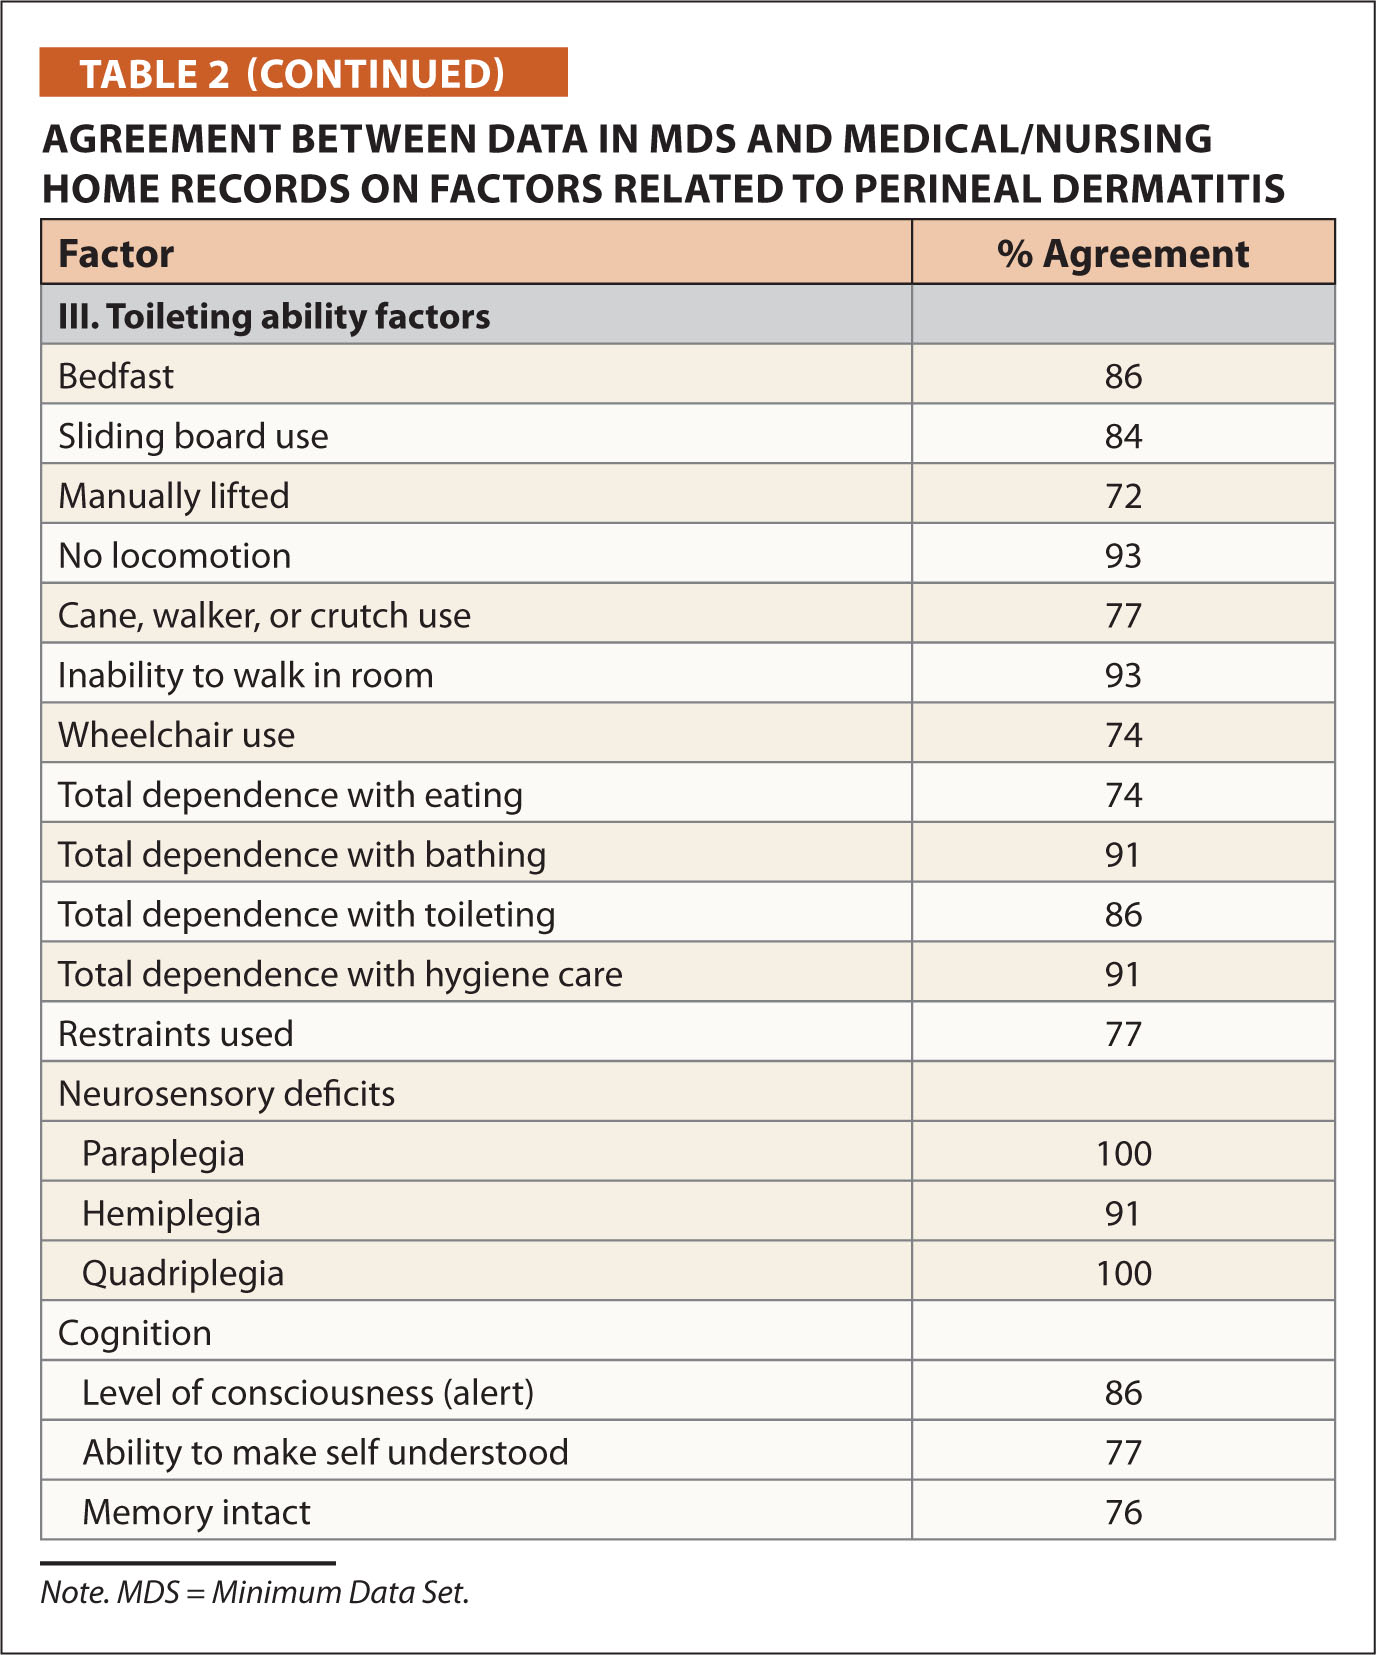 Agreement Between Data in MDS and Medical/nursing Home Records on Factors Related to Perineal Dermatitis